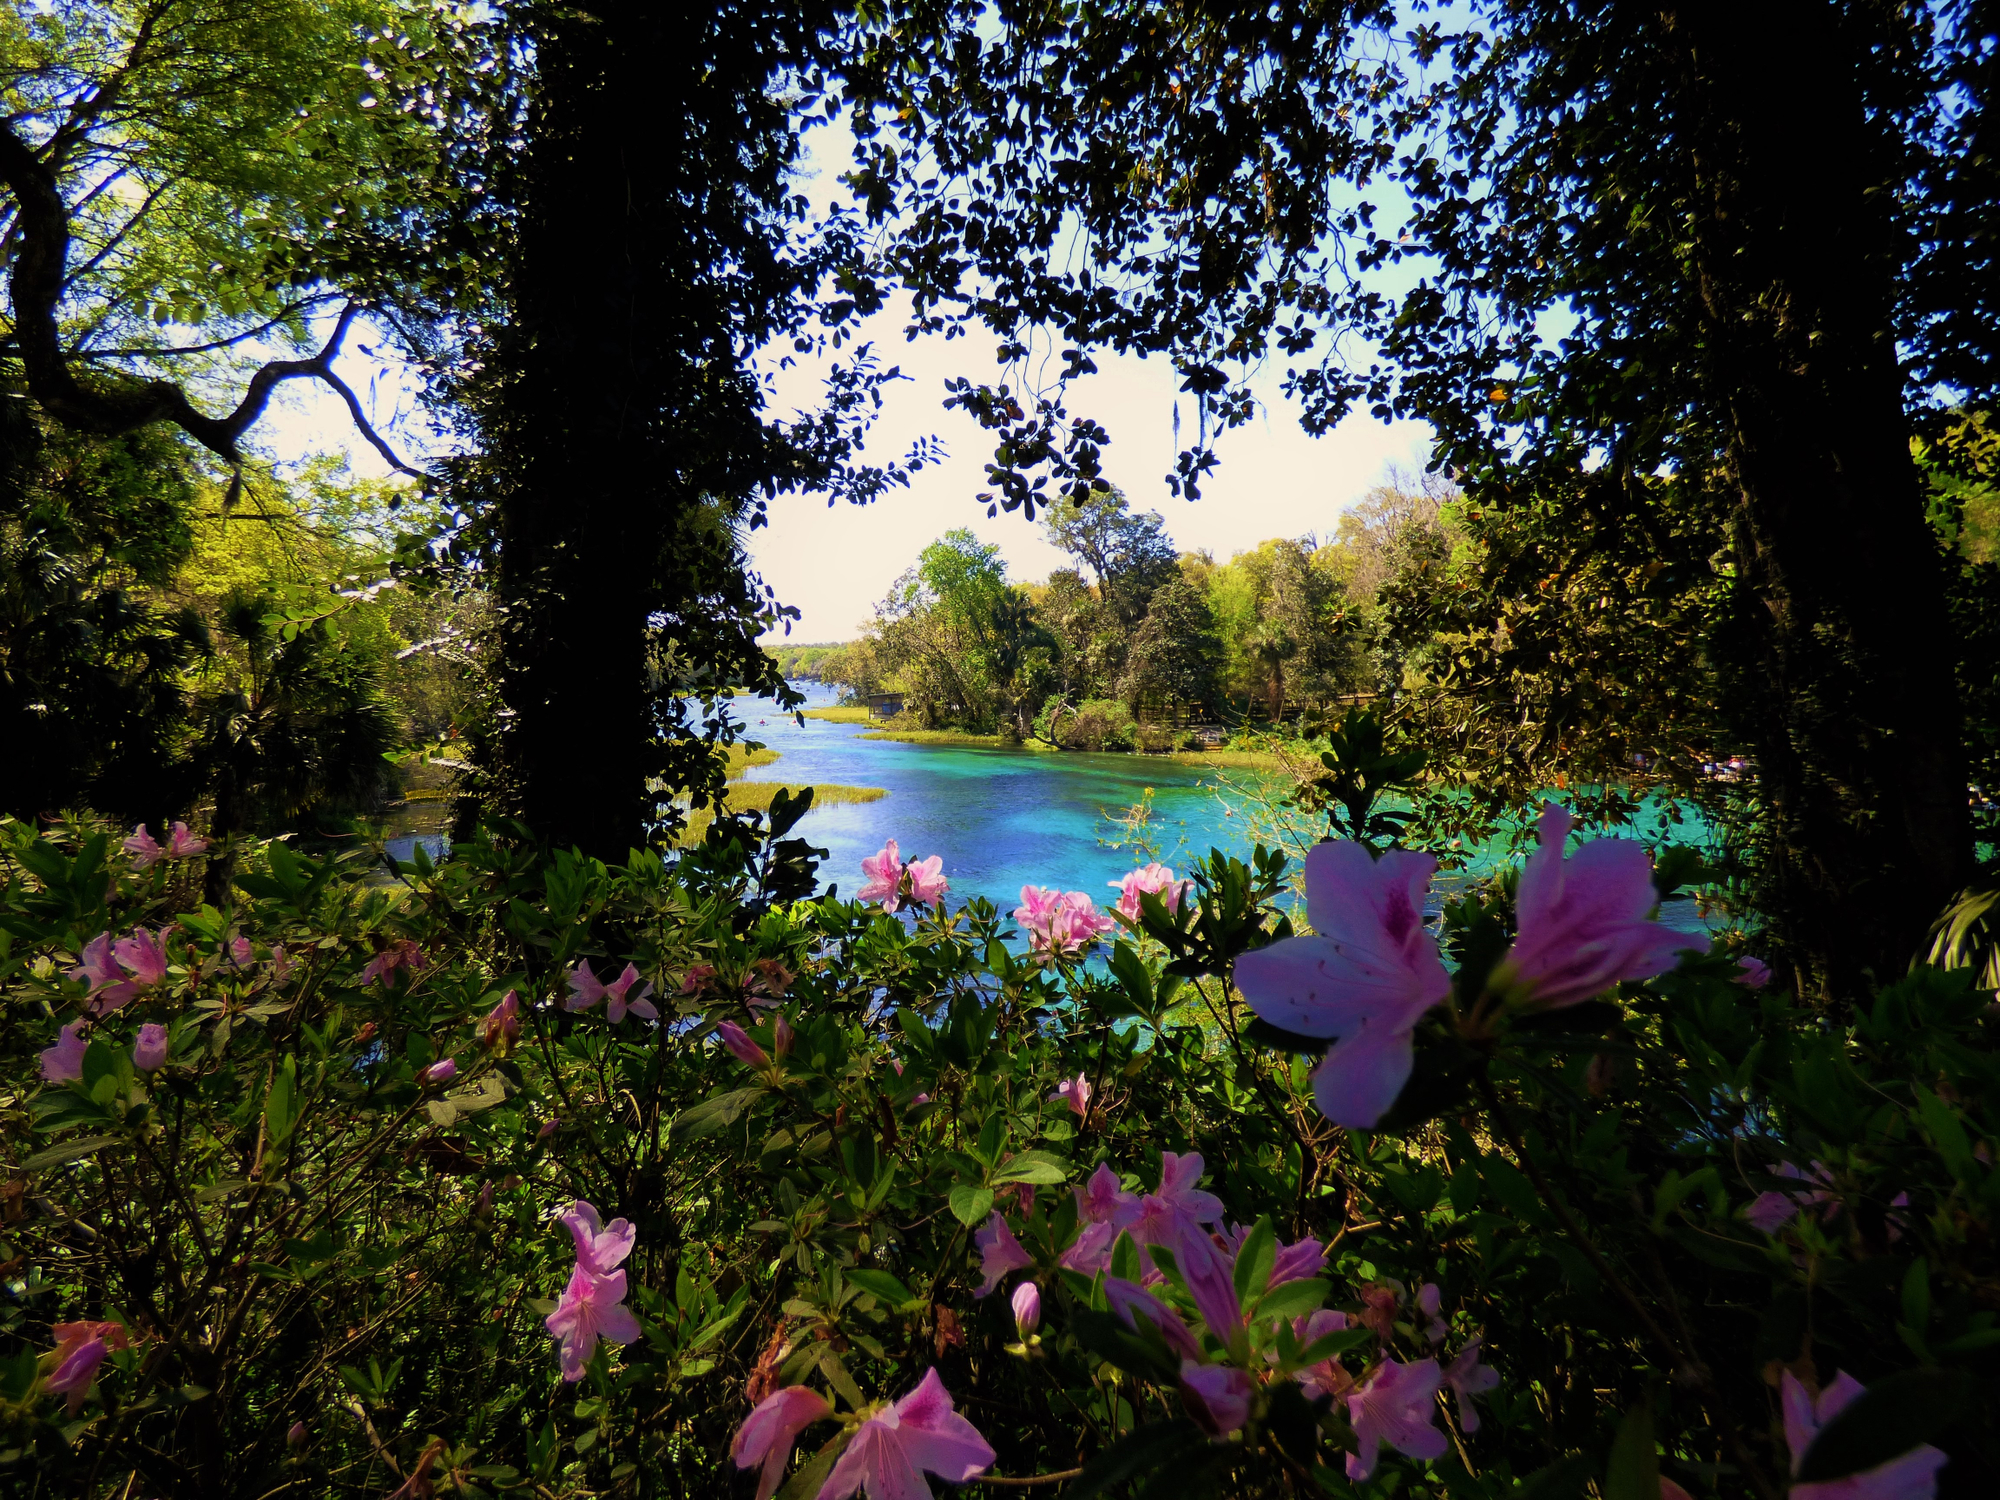 Spring time at Florida State Parks